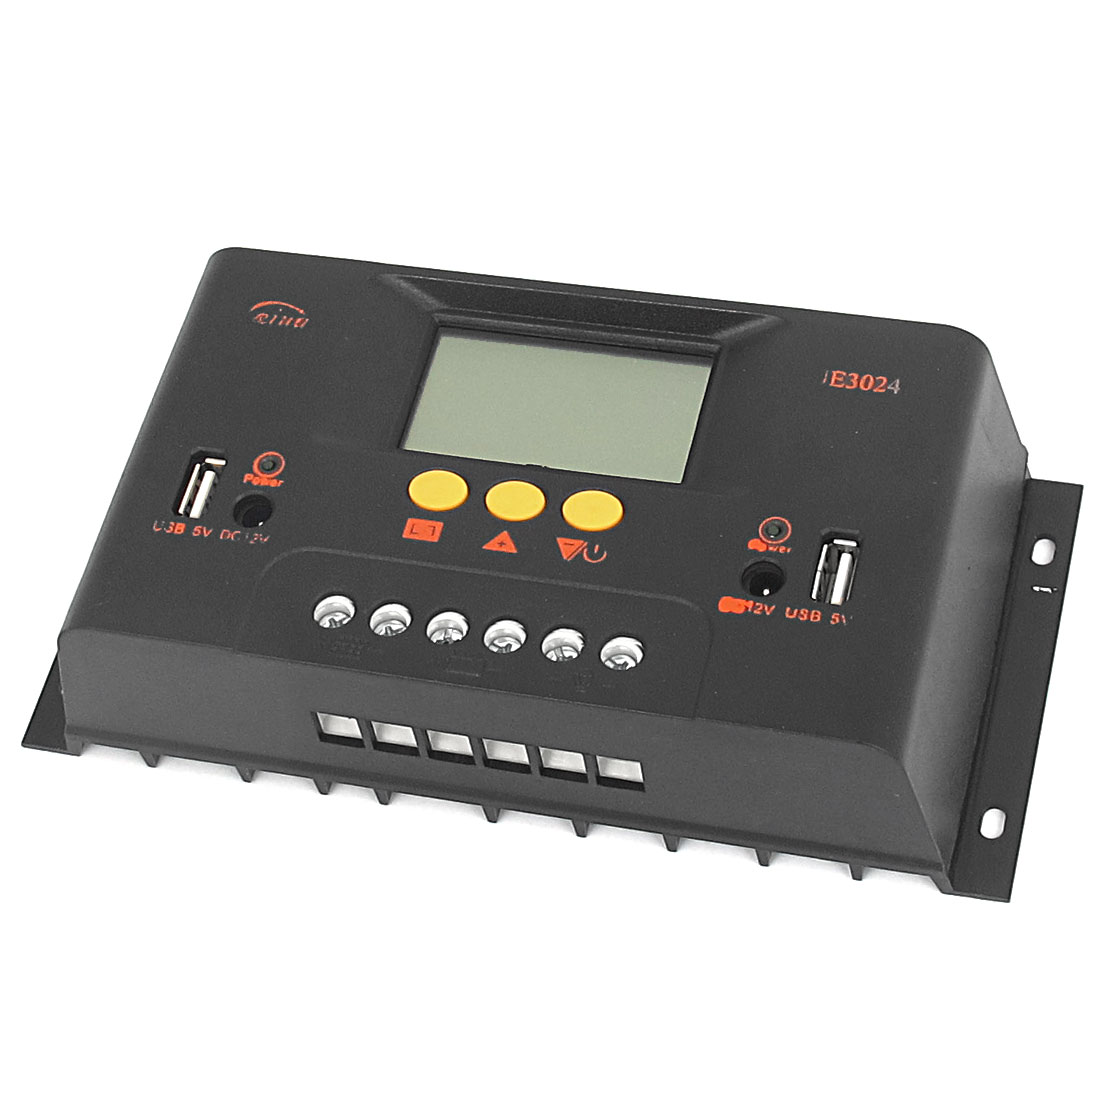 UE3024 30A 12V/24V PWM Solar Battery Regulator Charger Charge Controller Automatic Switch